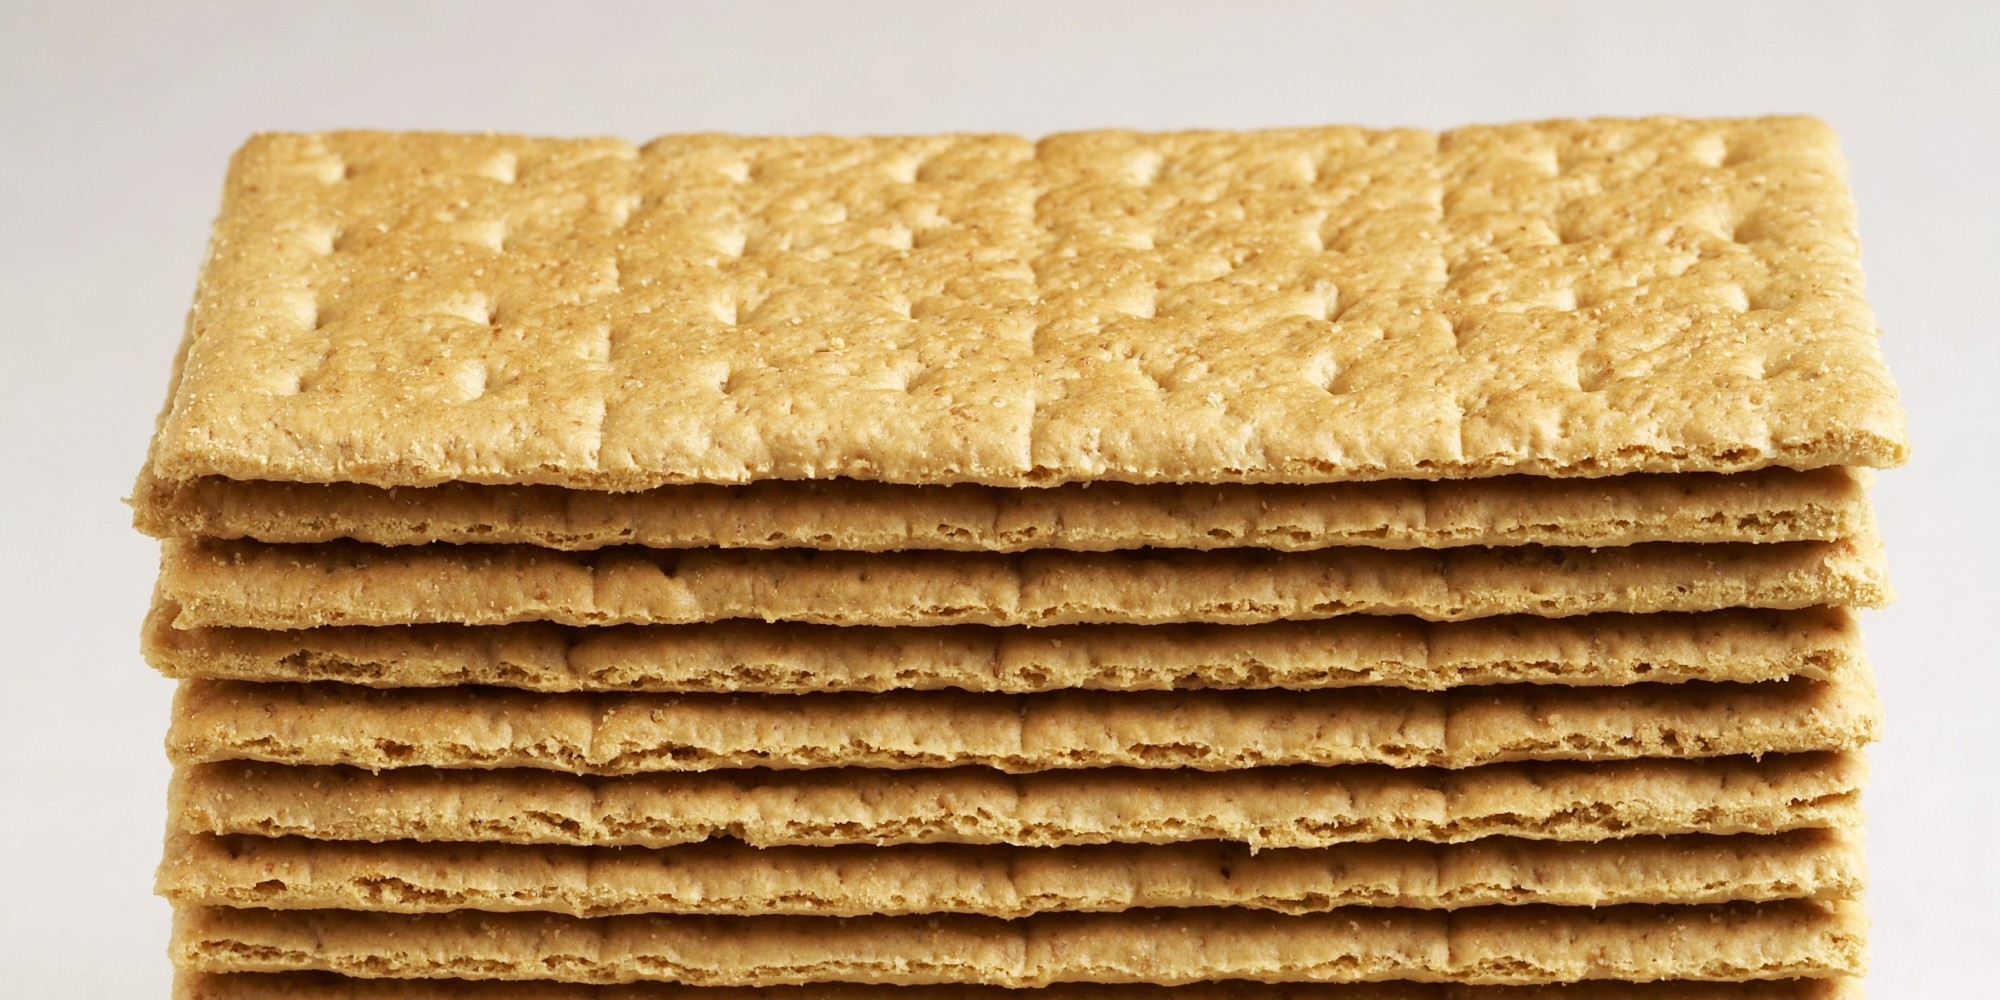 GRAHAM-CRACKER-facebook.jpg